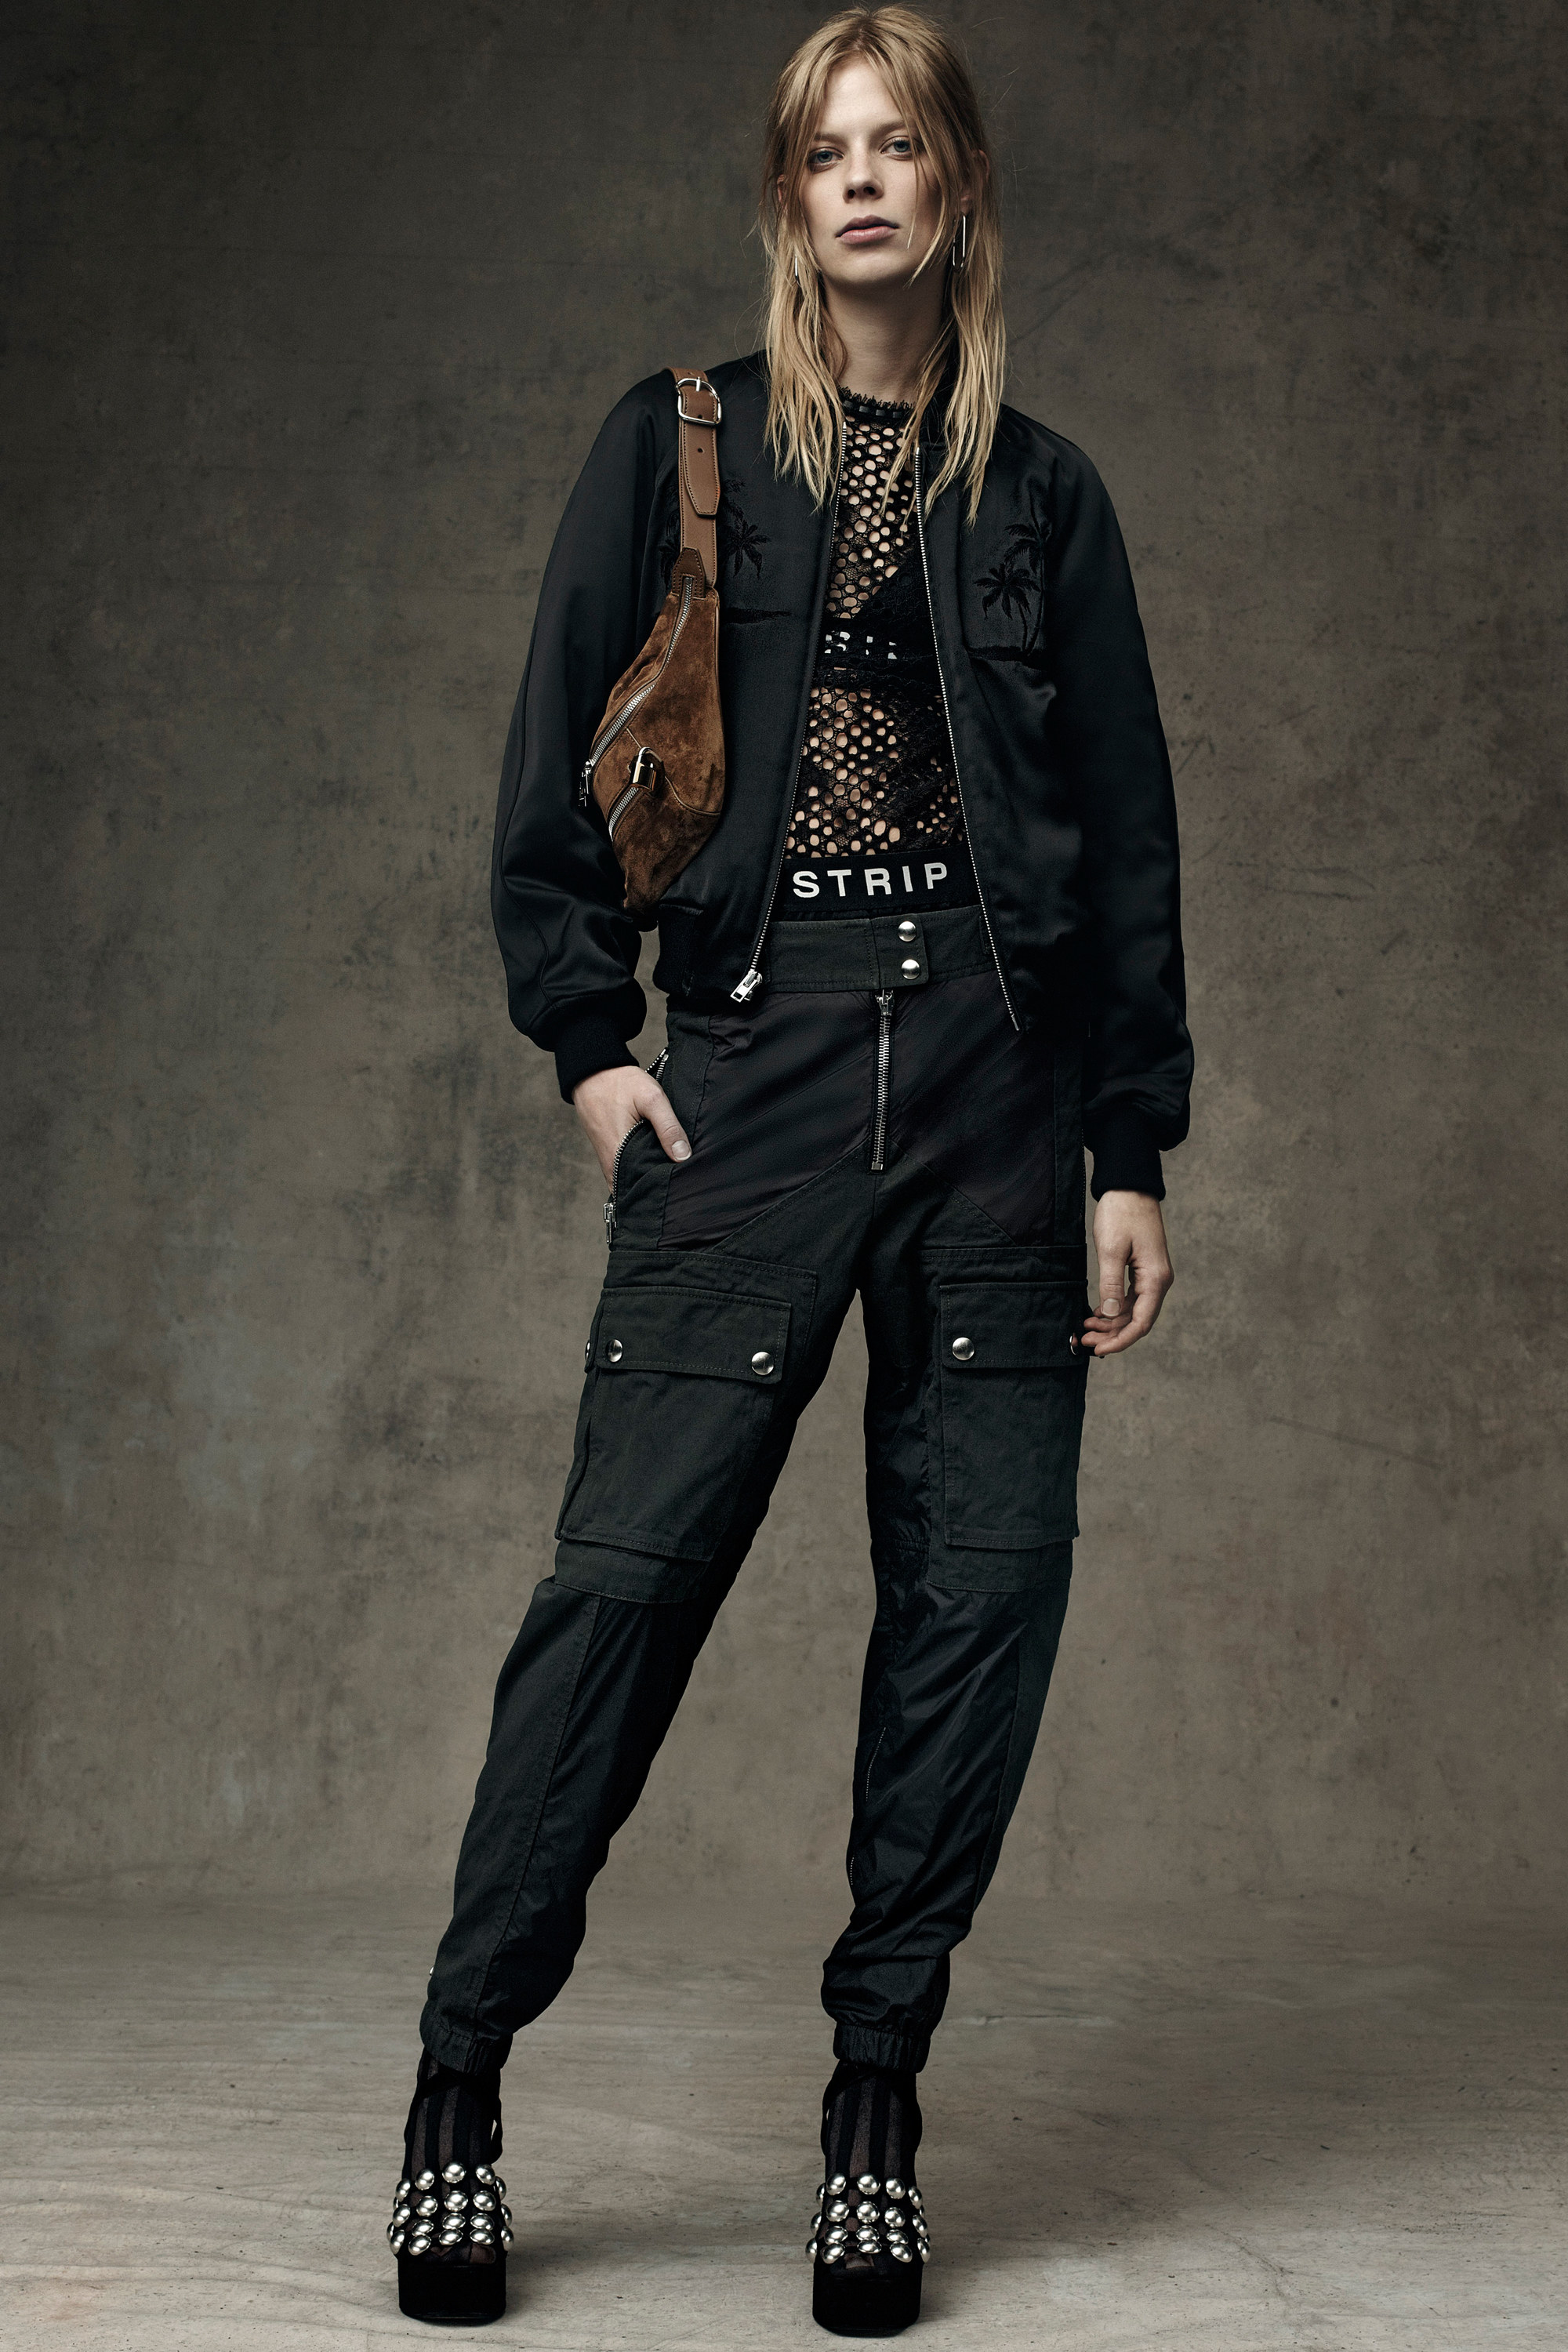 alexander-wang-pre-fall-2016-lookbook-11.jpg